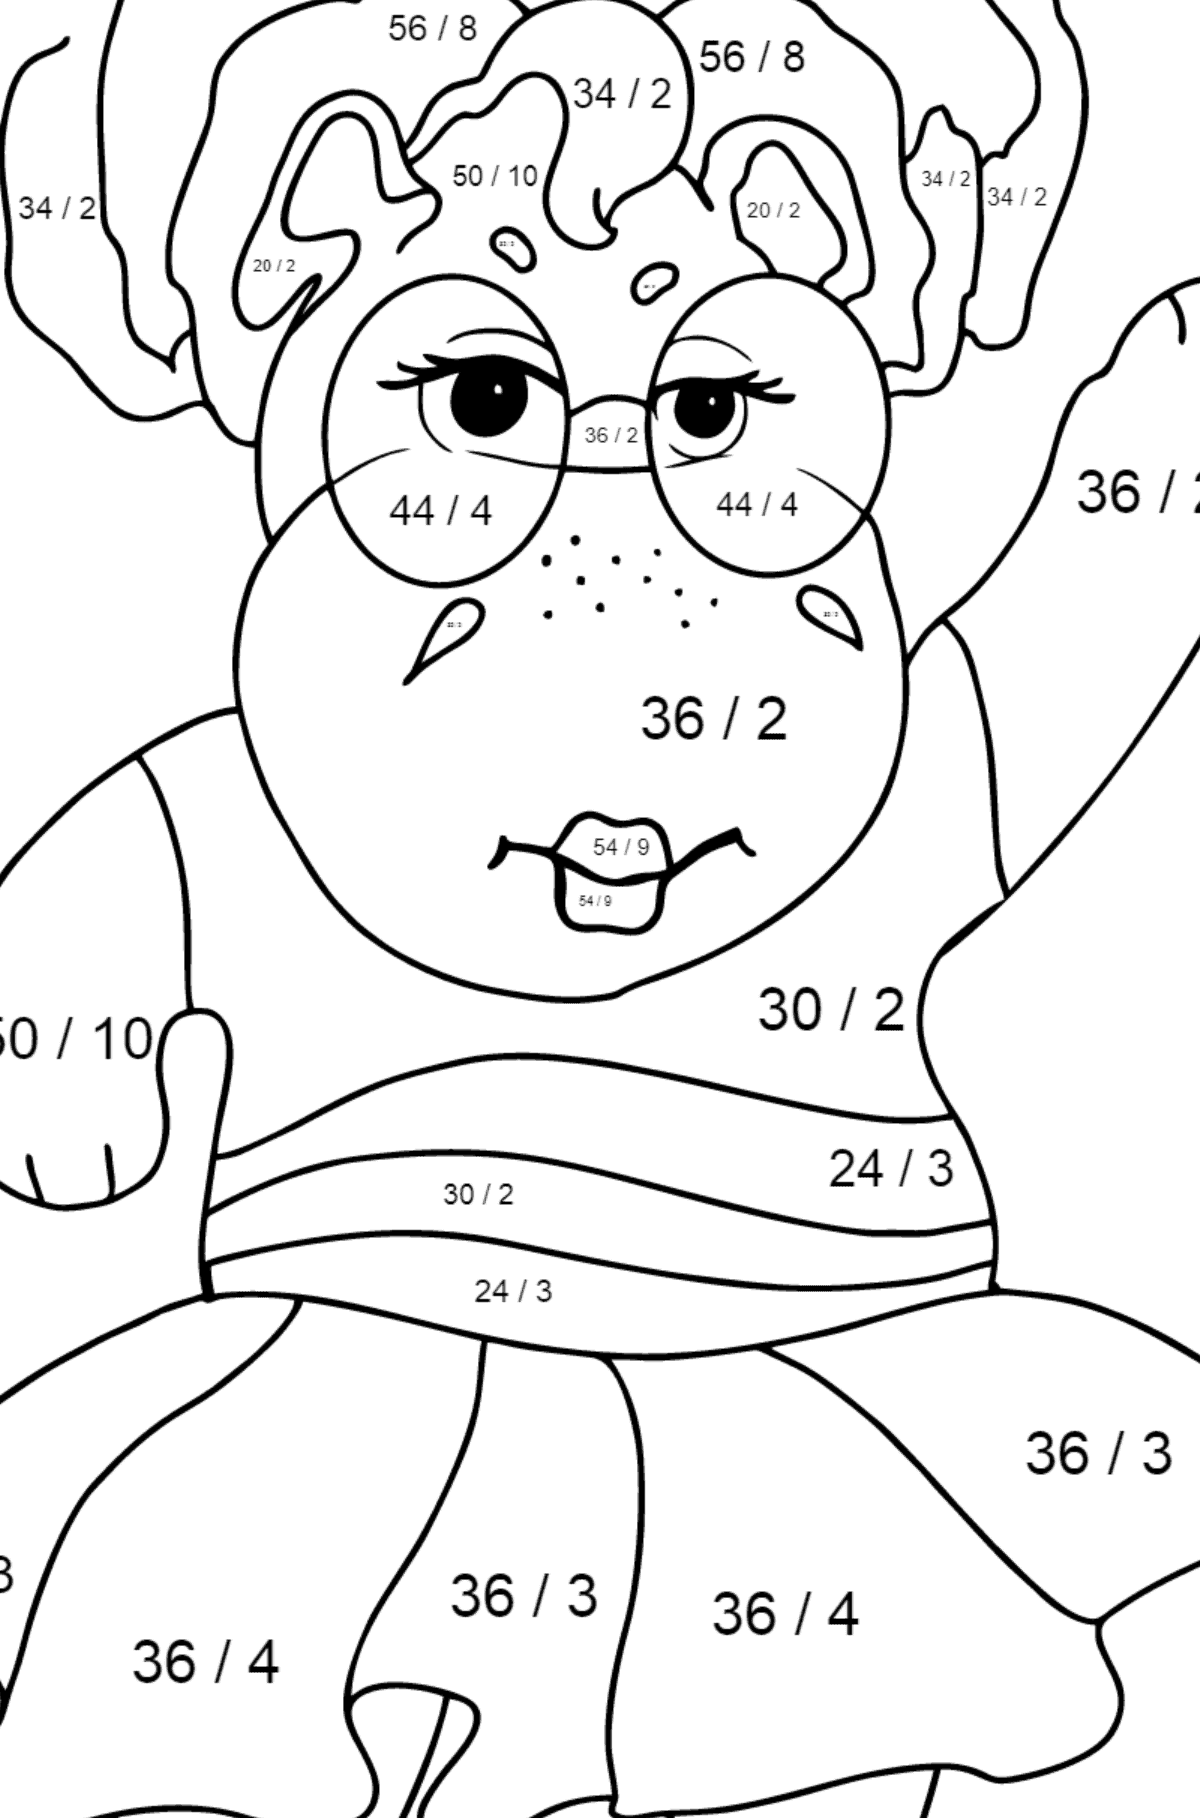 Coloring Page - A Hippo in Sunglasses for Children  - Color by Number Division